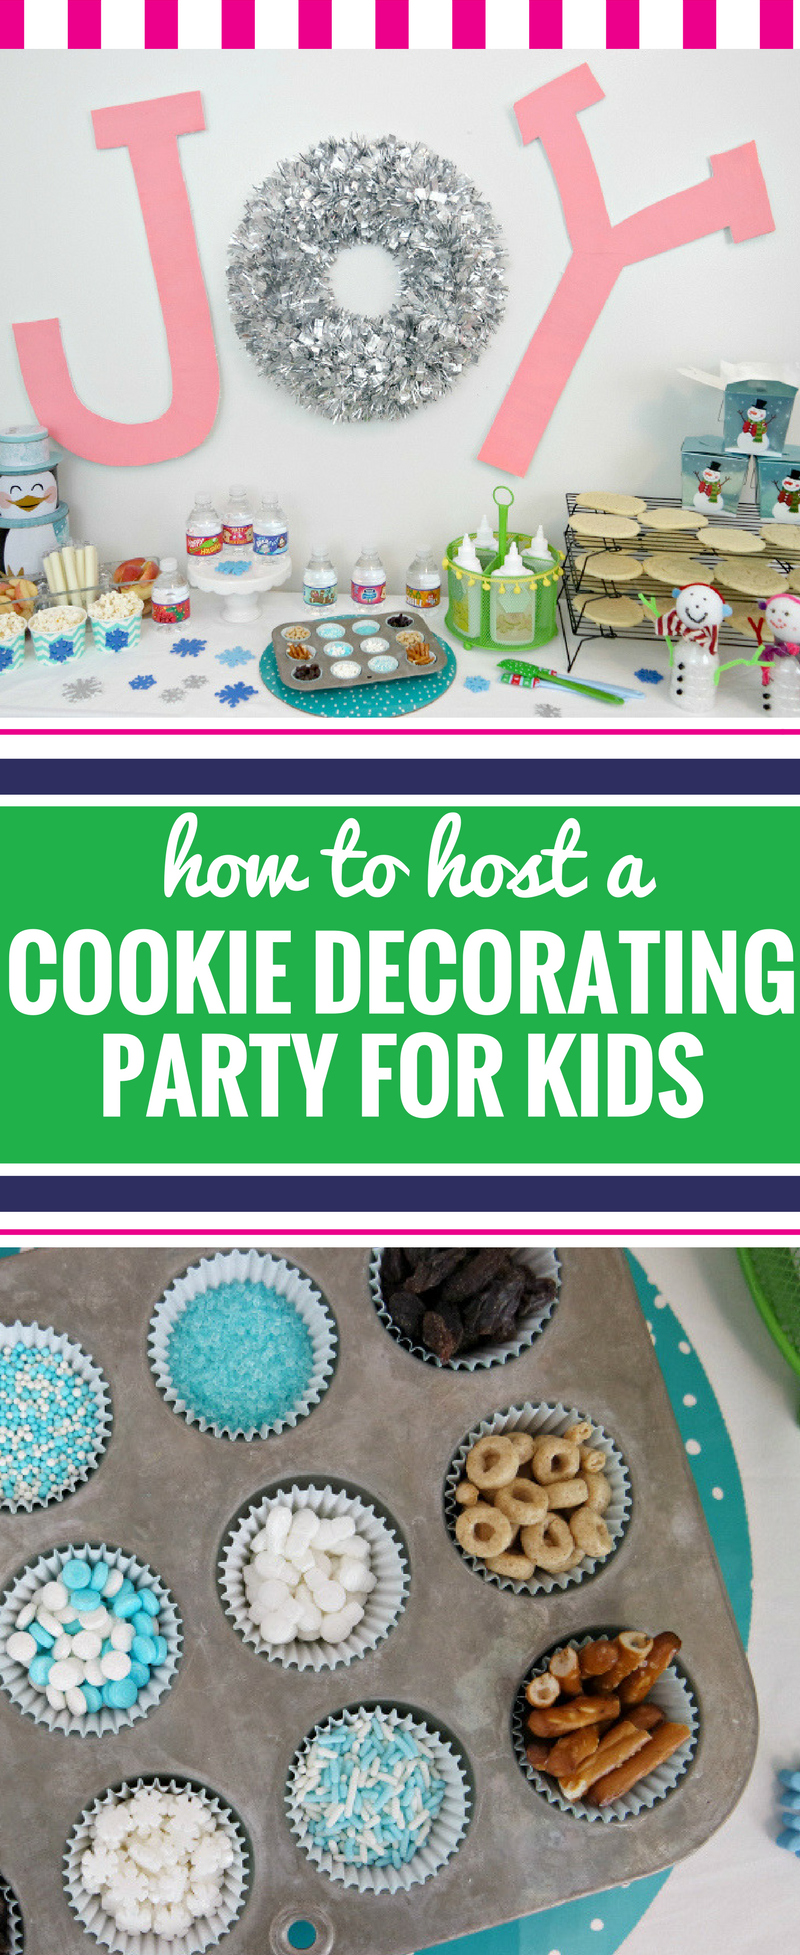 cookie decorating party pin - Christmas Cookie Decorating Party